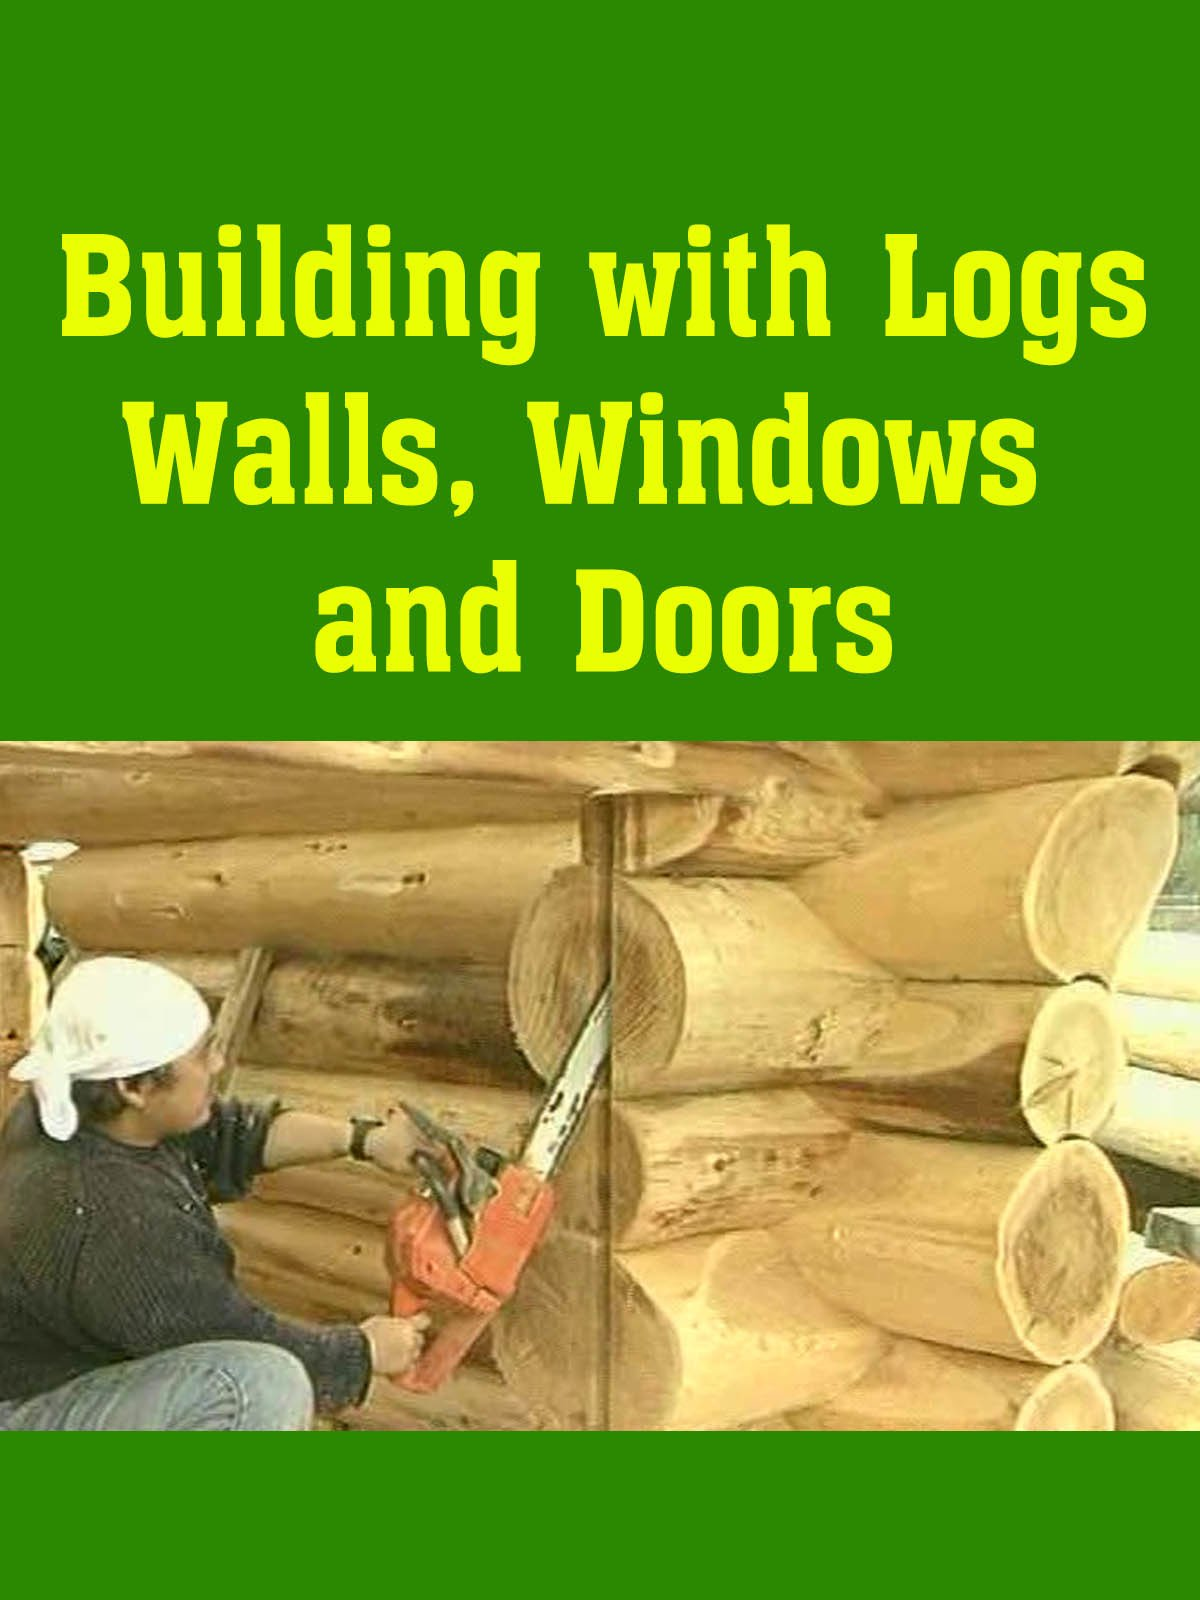 Building with Logs Walls, Windows and Doors